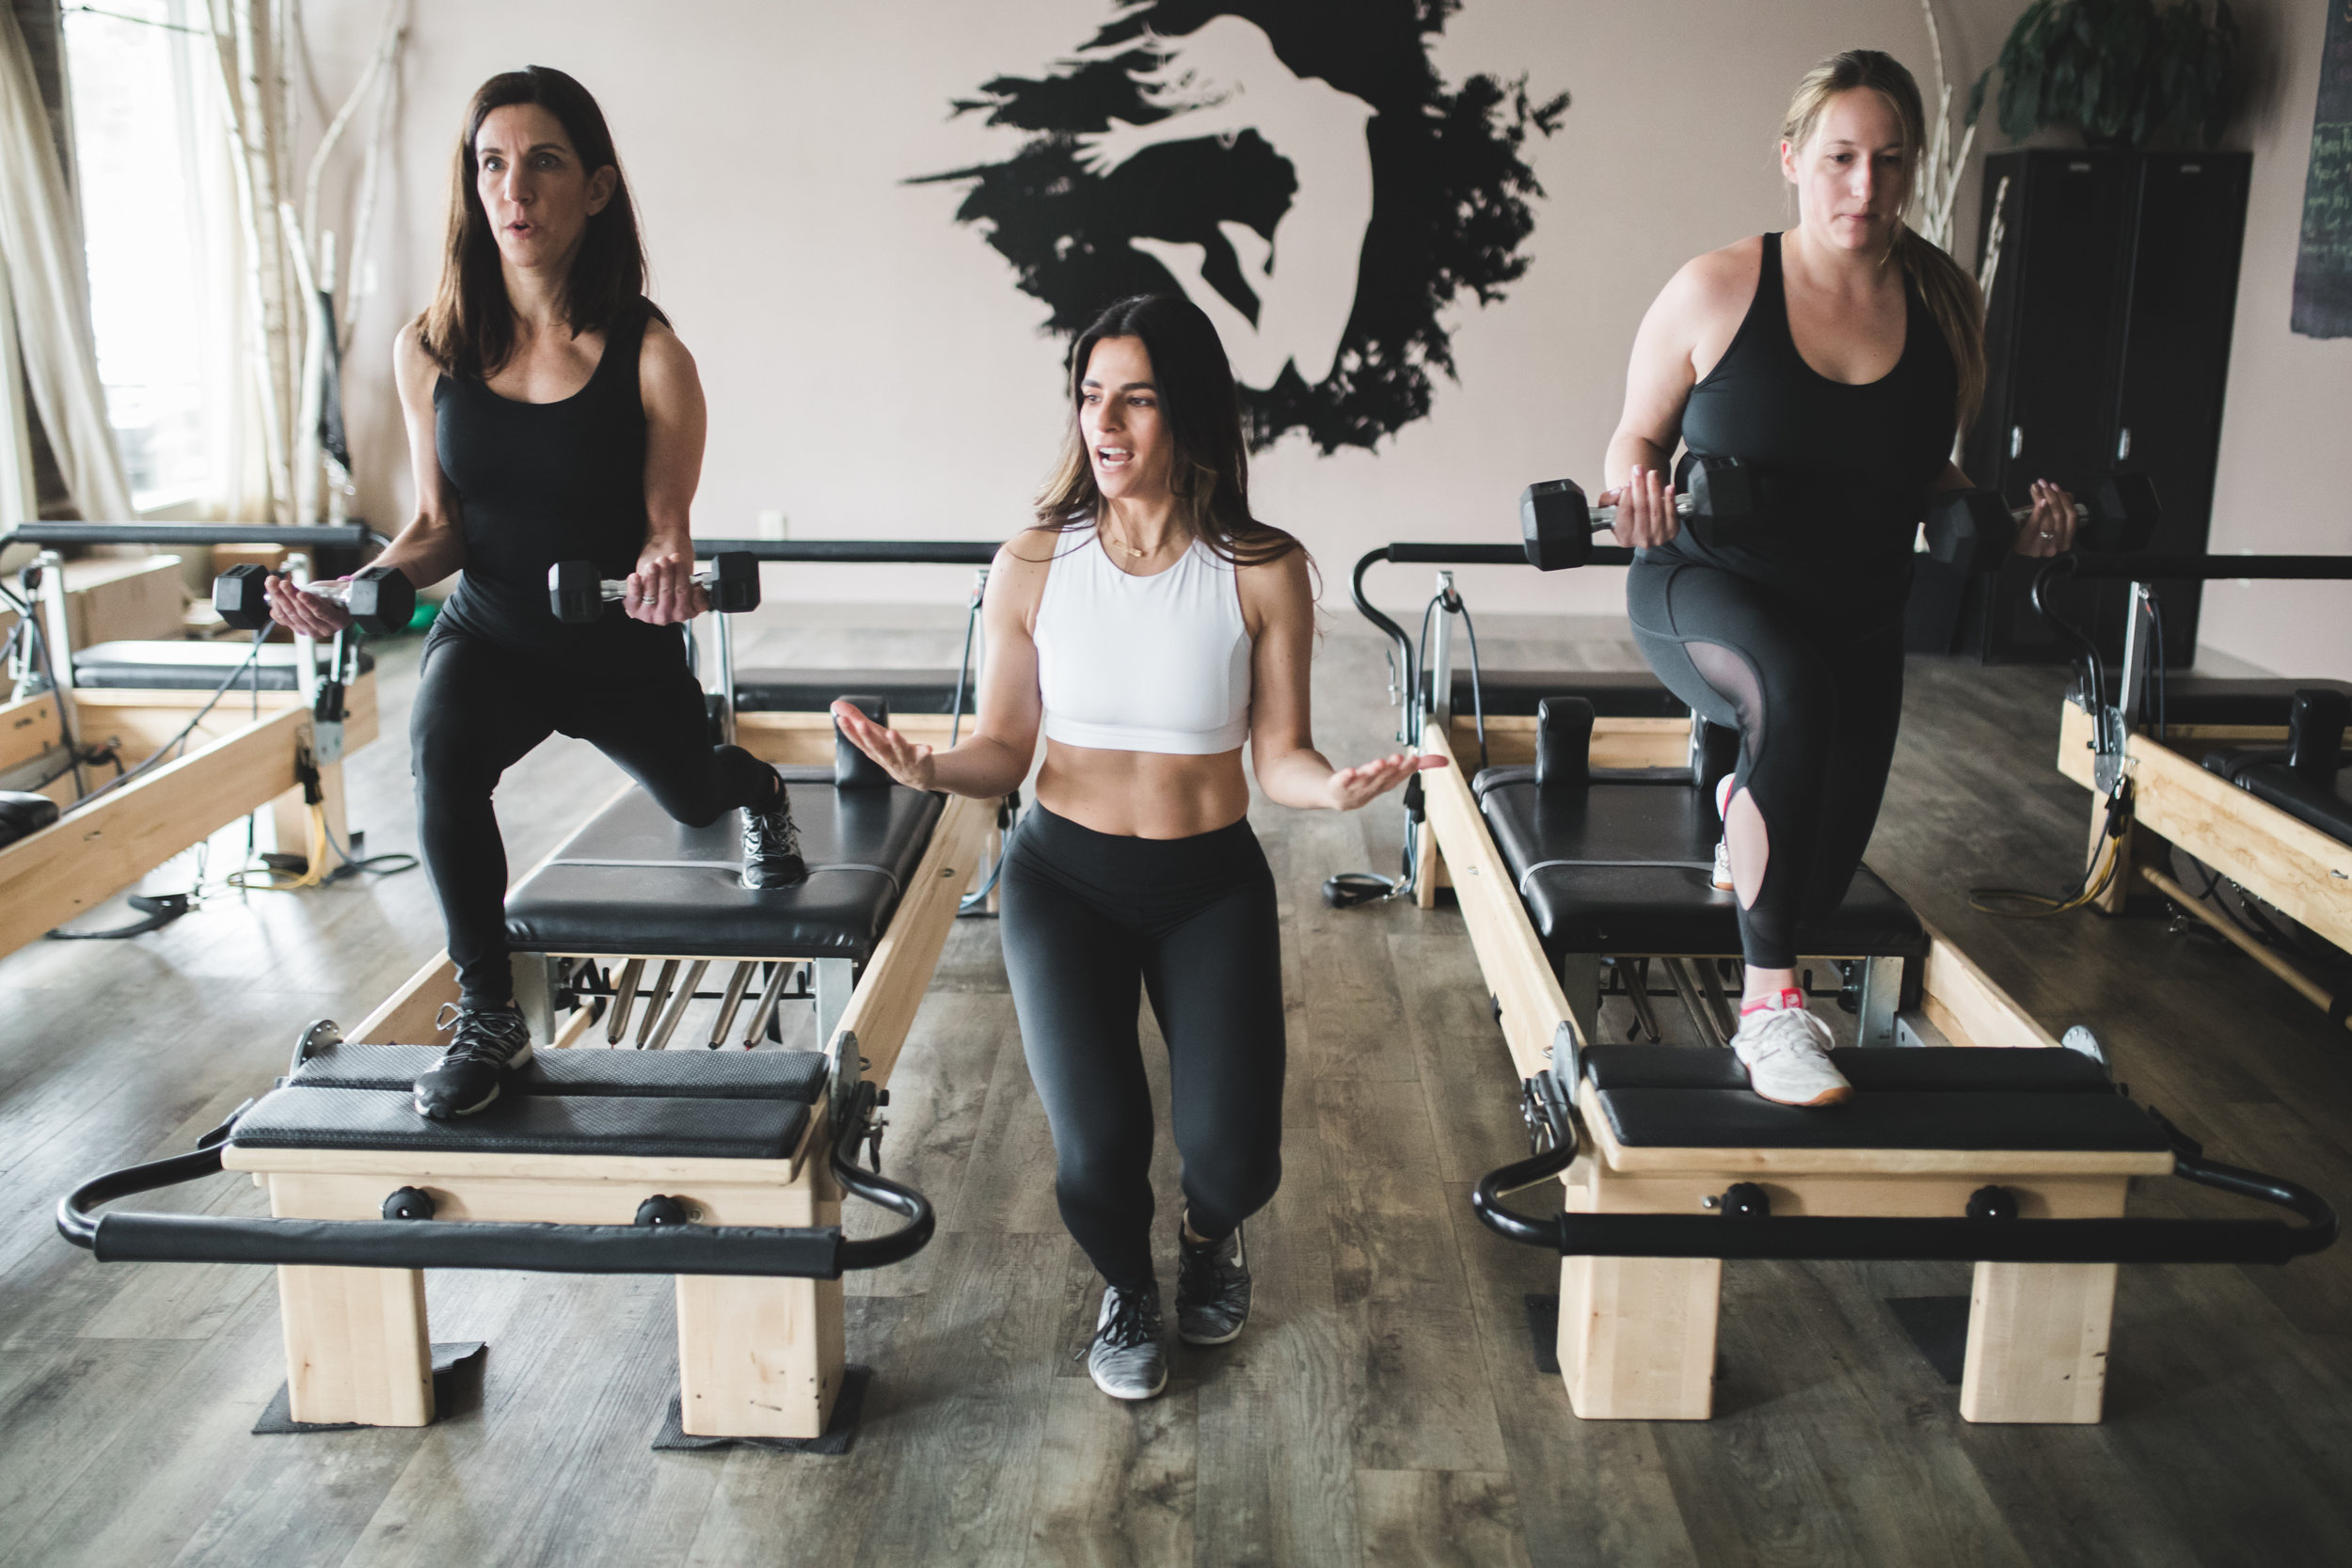 Only at FreeStyle have Access to hiit workouts, boxing, pilates reformer & Yoga - Train to learn a new skill, to get fit, to increase your VO2max, to strengthen your muscles and organs, to develop new patterns and rid yourself of old habits that no longer serve you with the BEST fitness community around